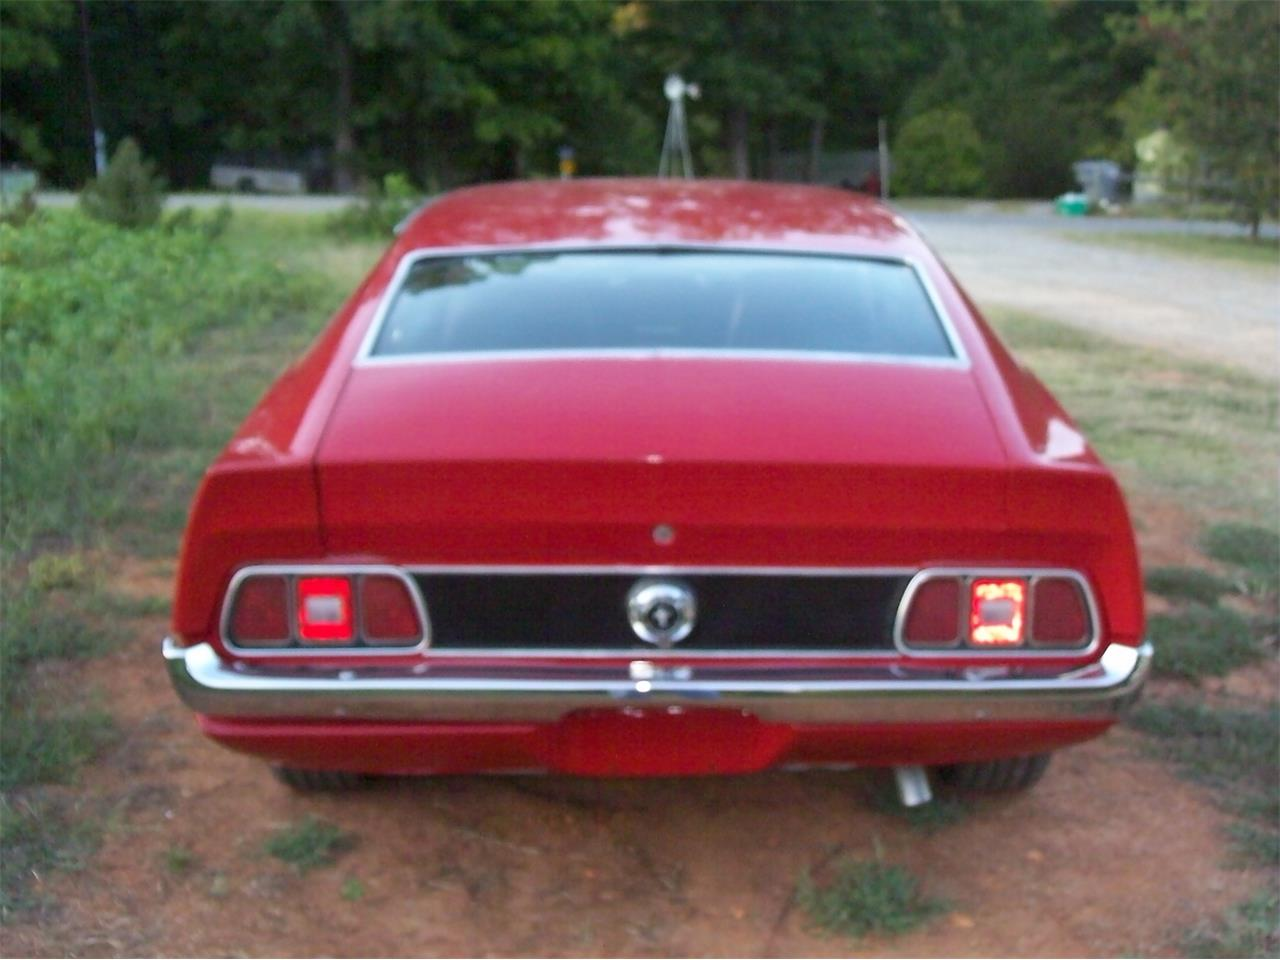 Large Picture of Classic 1971 Ford Mustang located in North Carolina Offered by a Private Seller - DBCV